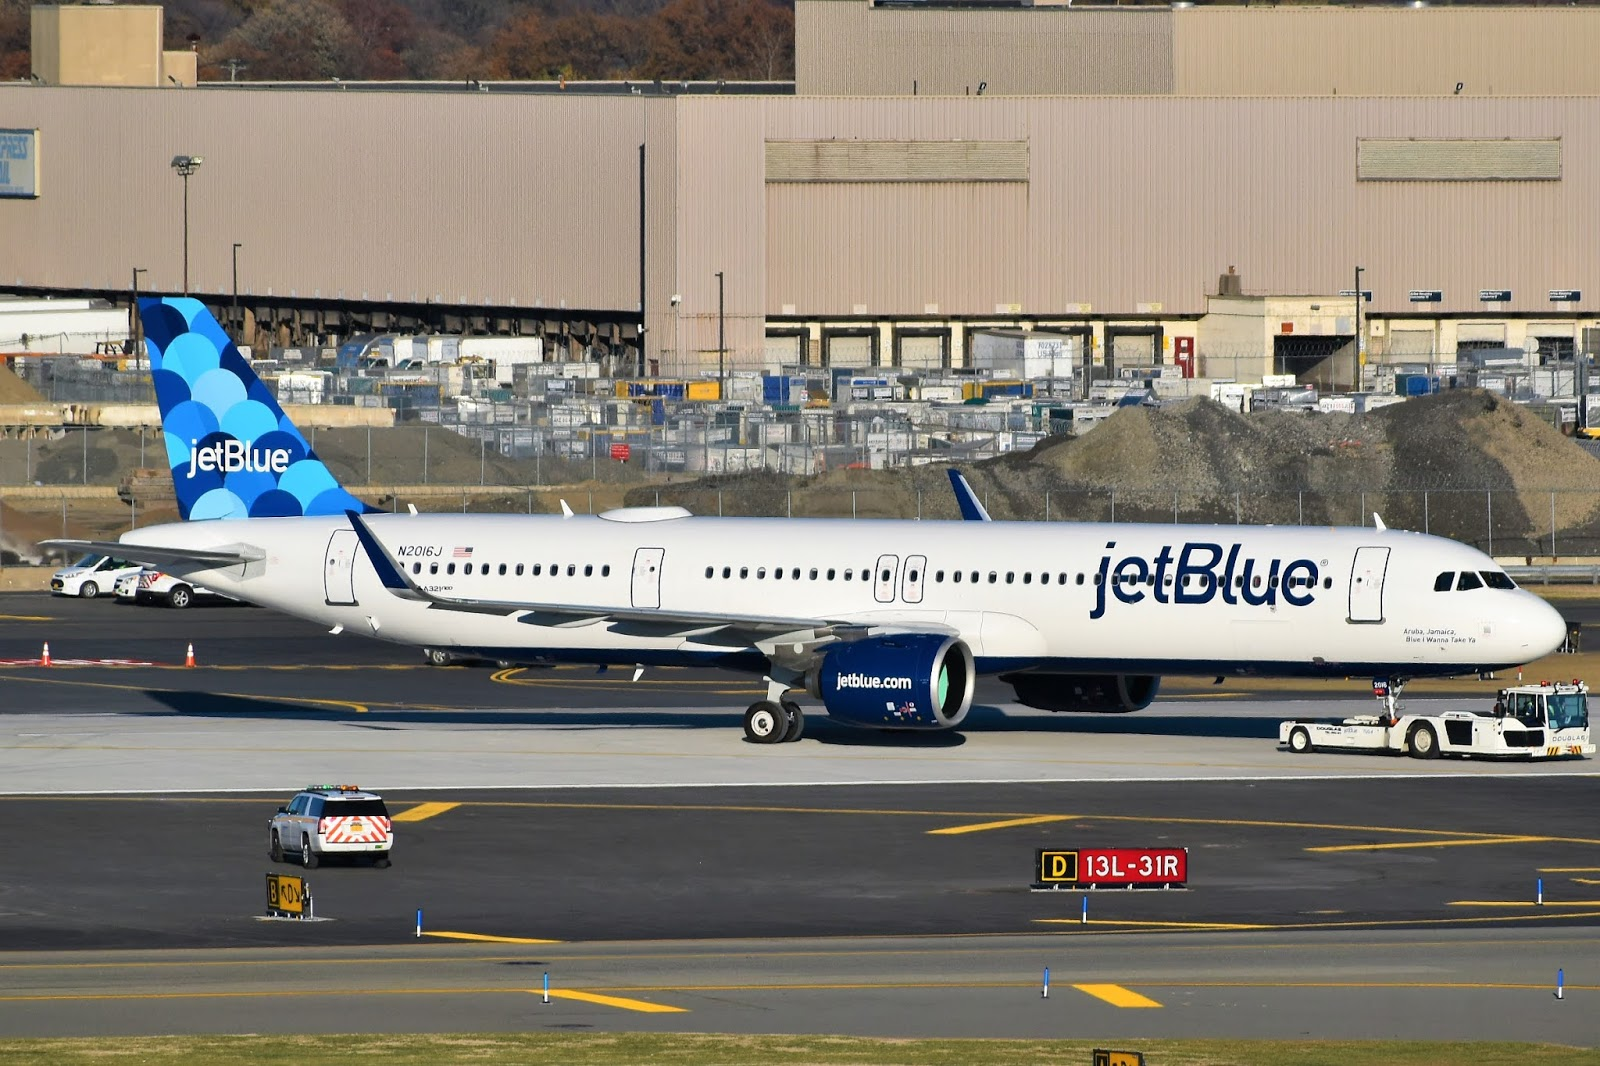 JetBlue_Airways_Airbus_A321-271NX_N2016.jpg